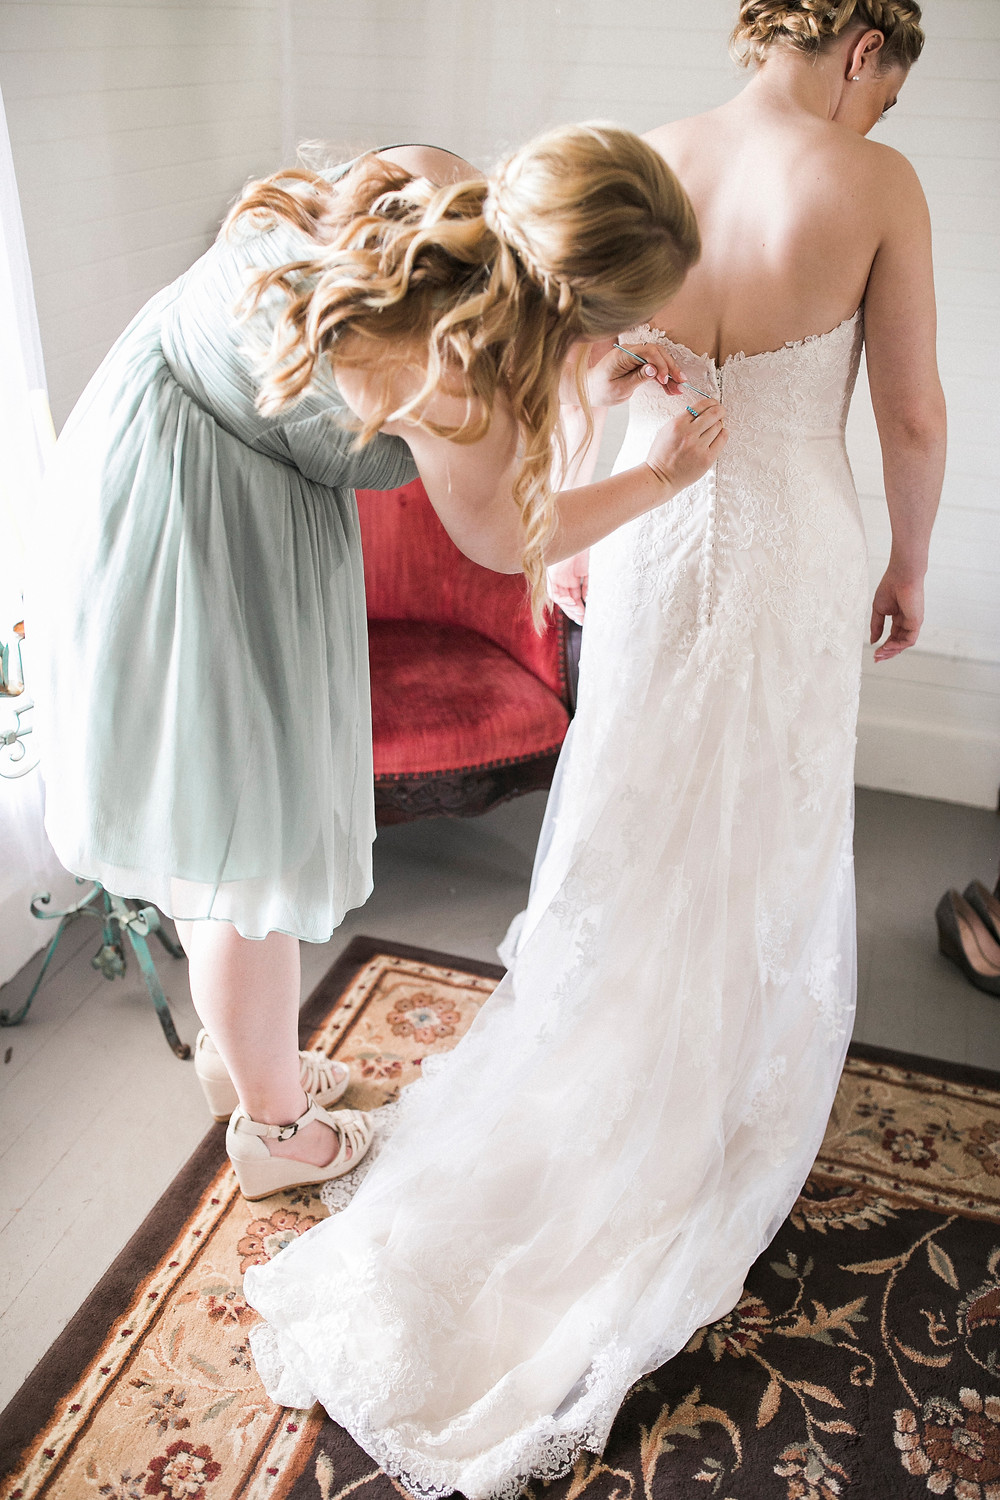 sister helps bride into dress